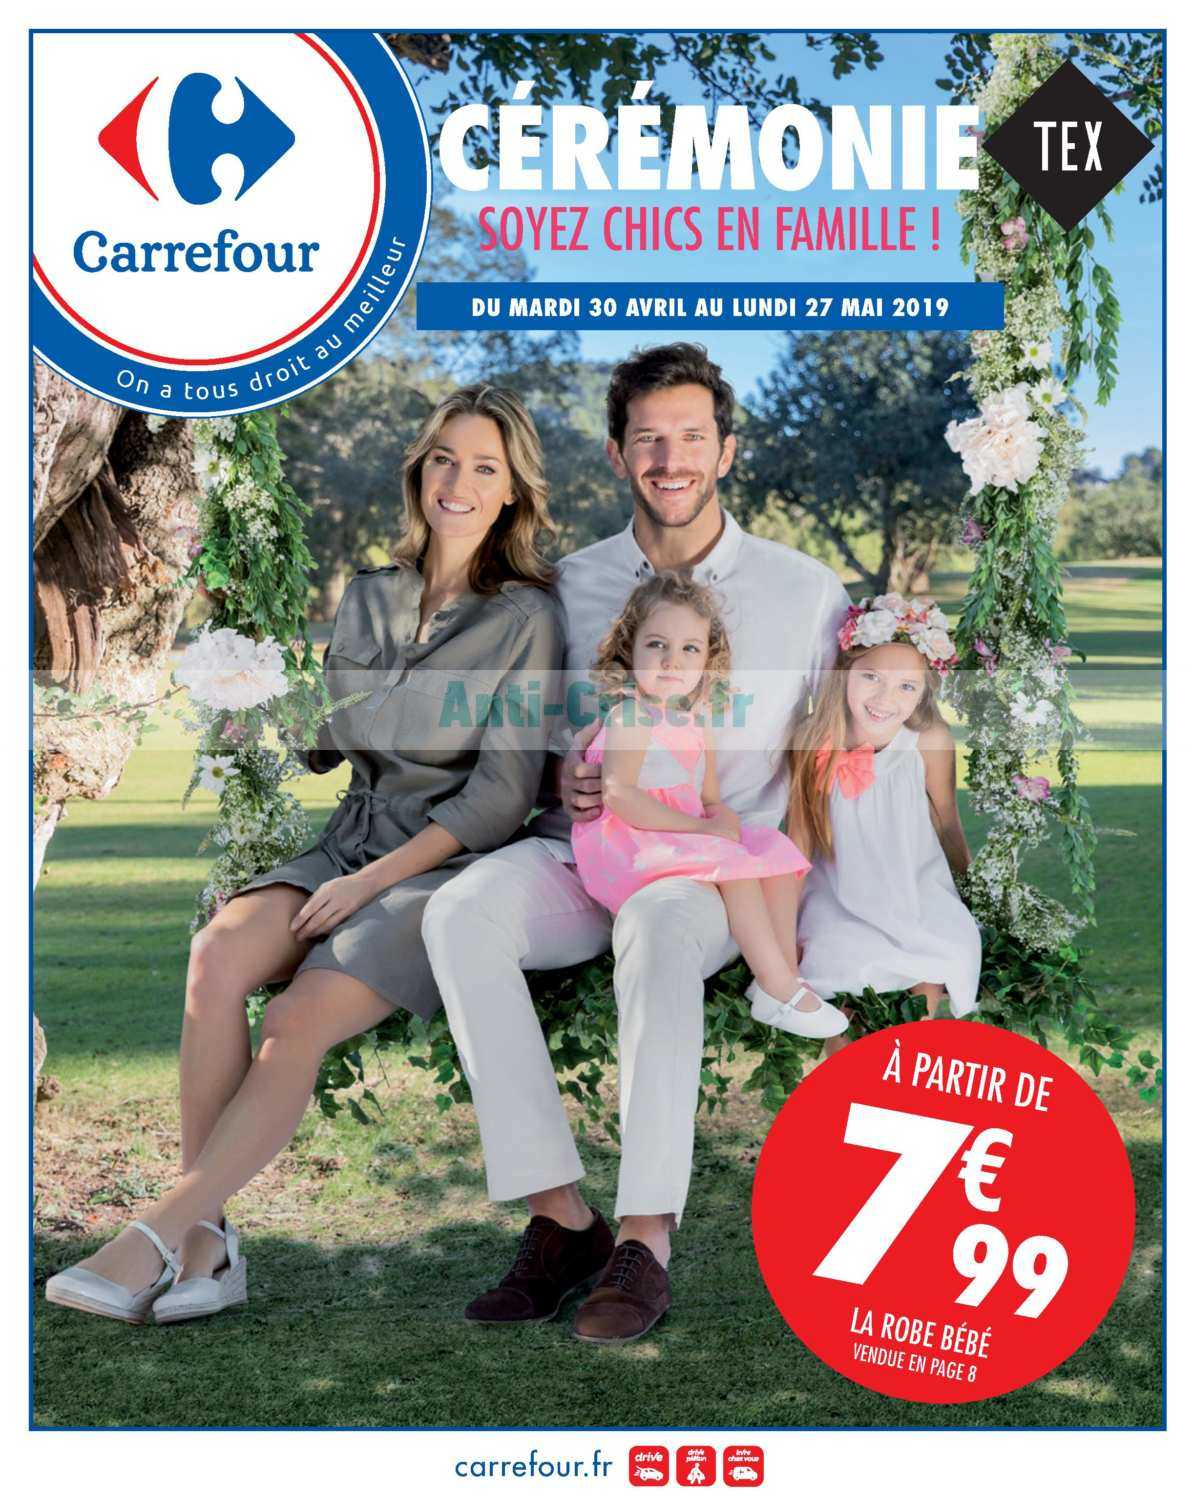 Catalogue Carrefour Tex Collection Automne Hiver 2014